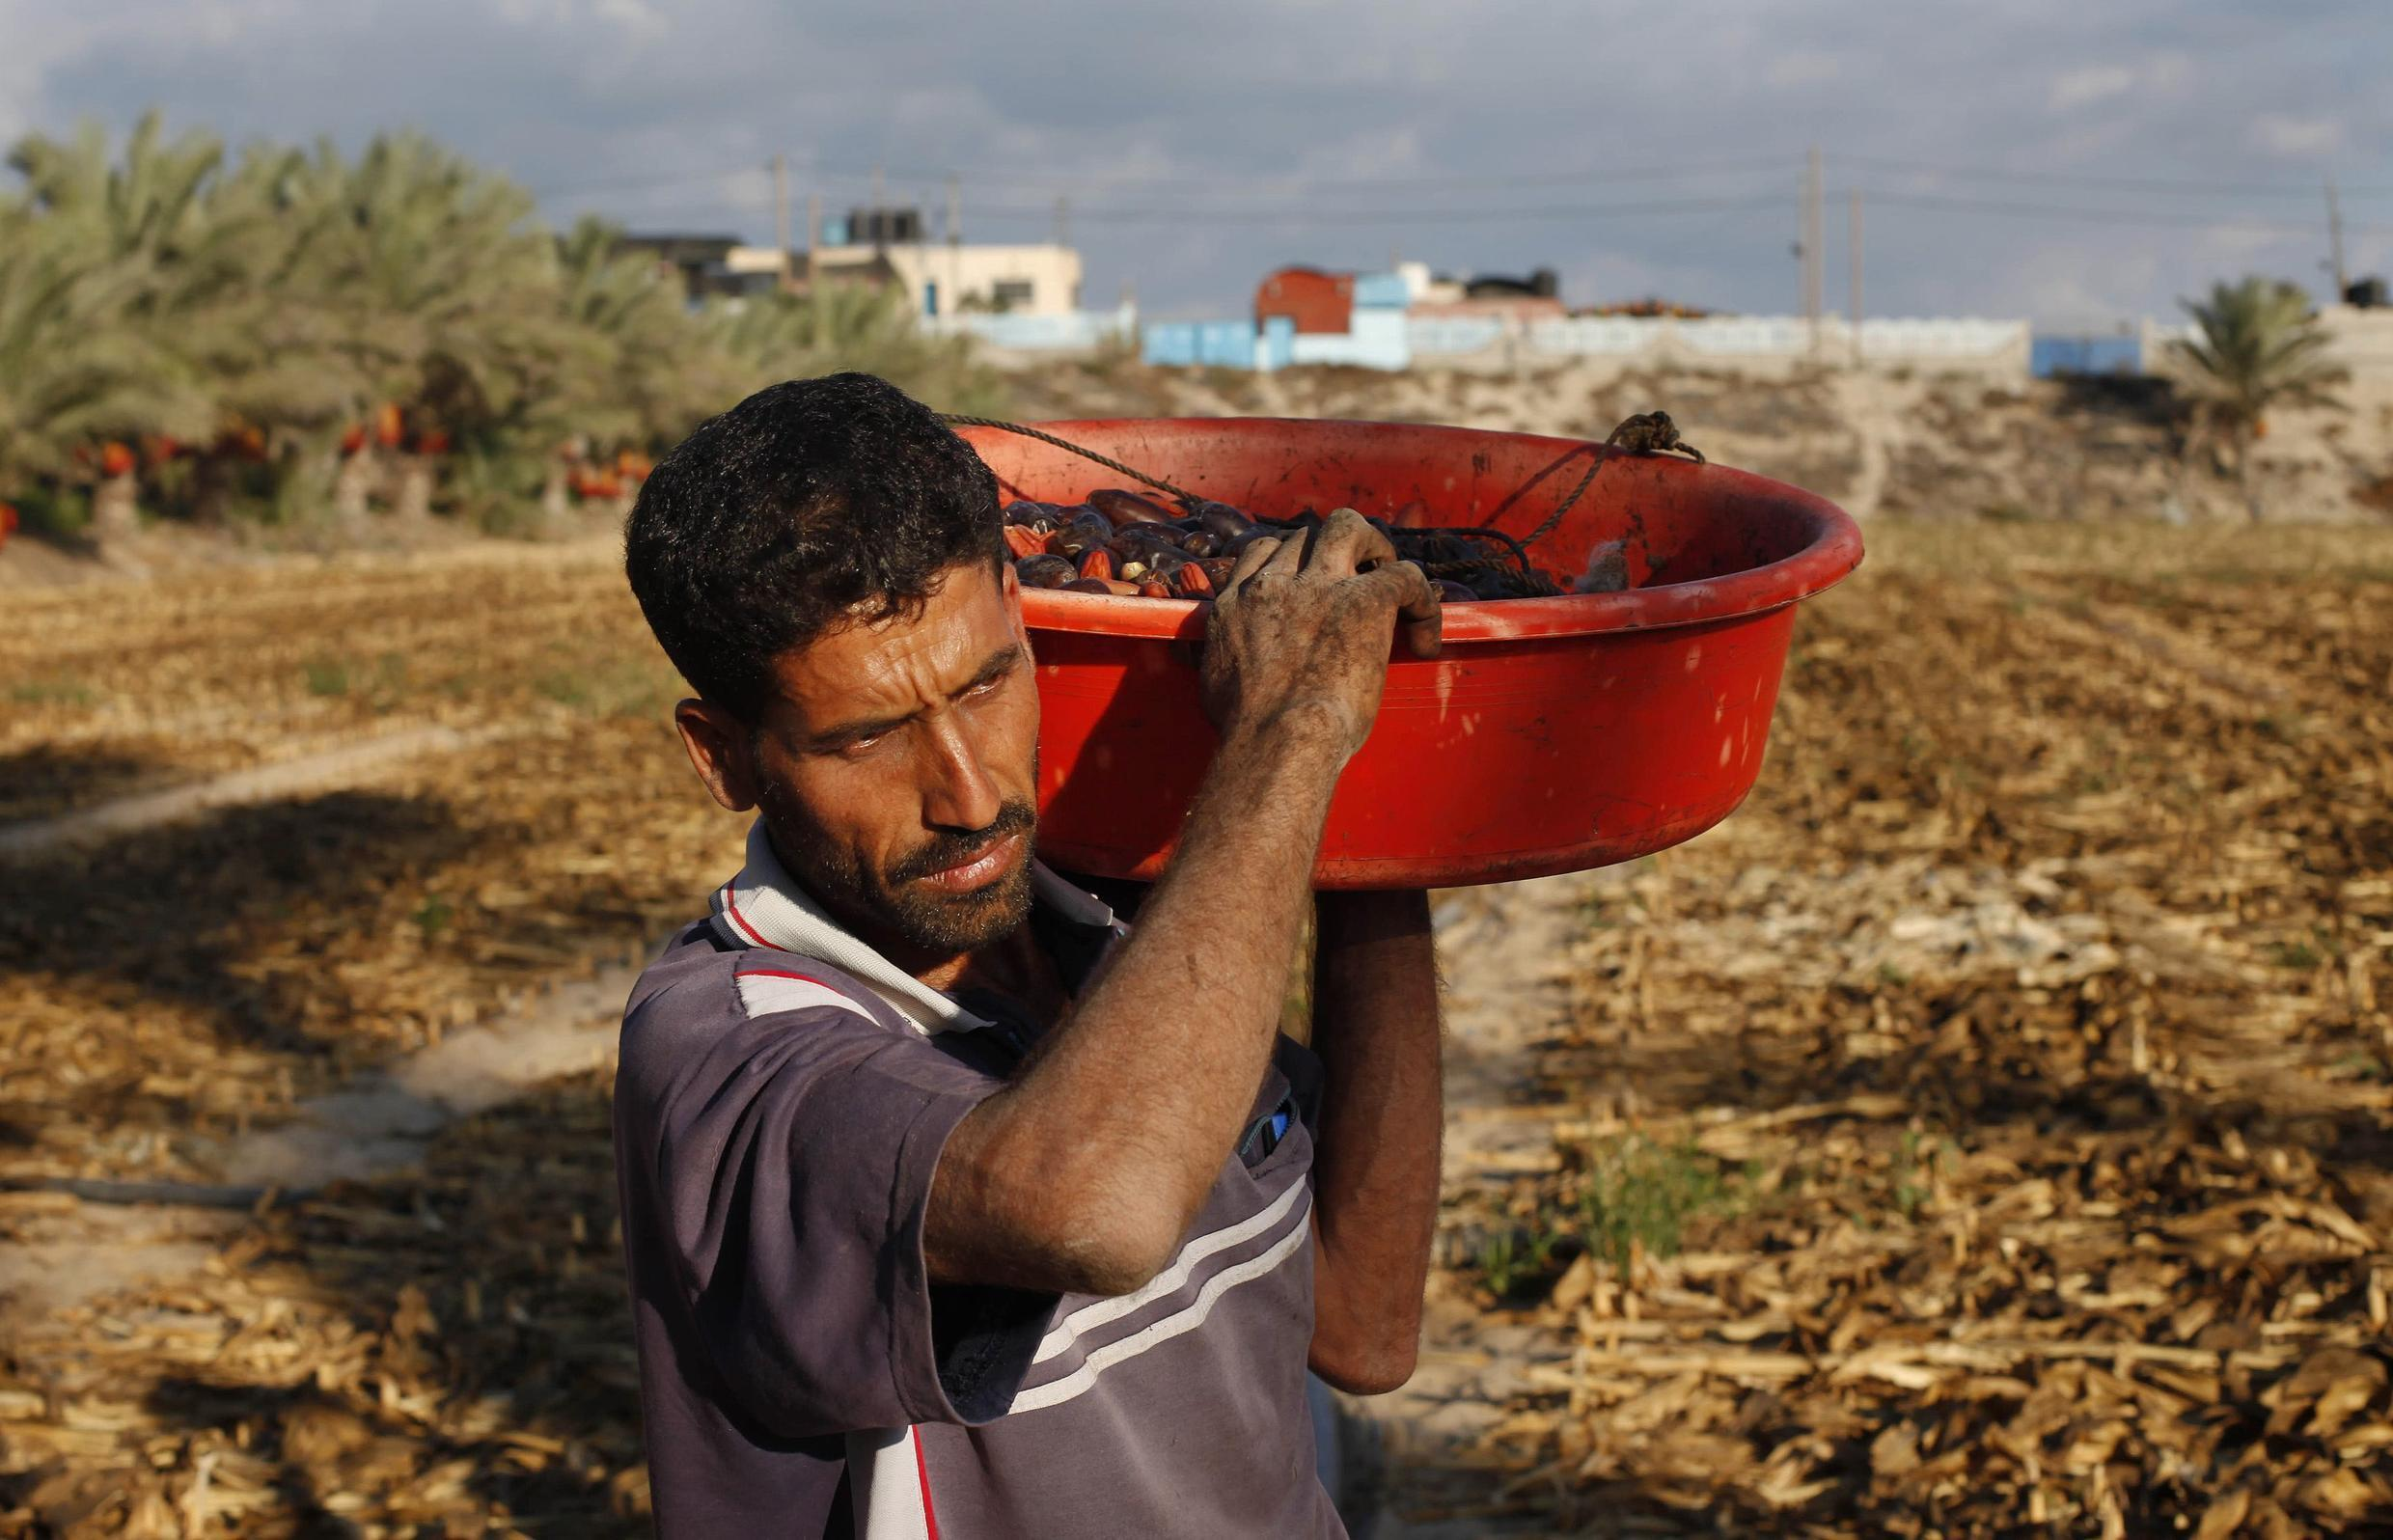 A Palestinian farmer carries dates from palm trees in the central Gaza Strip